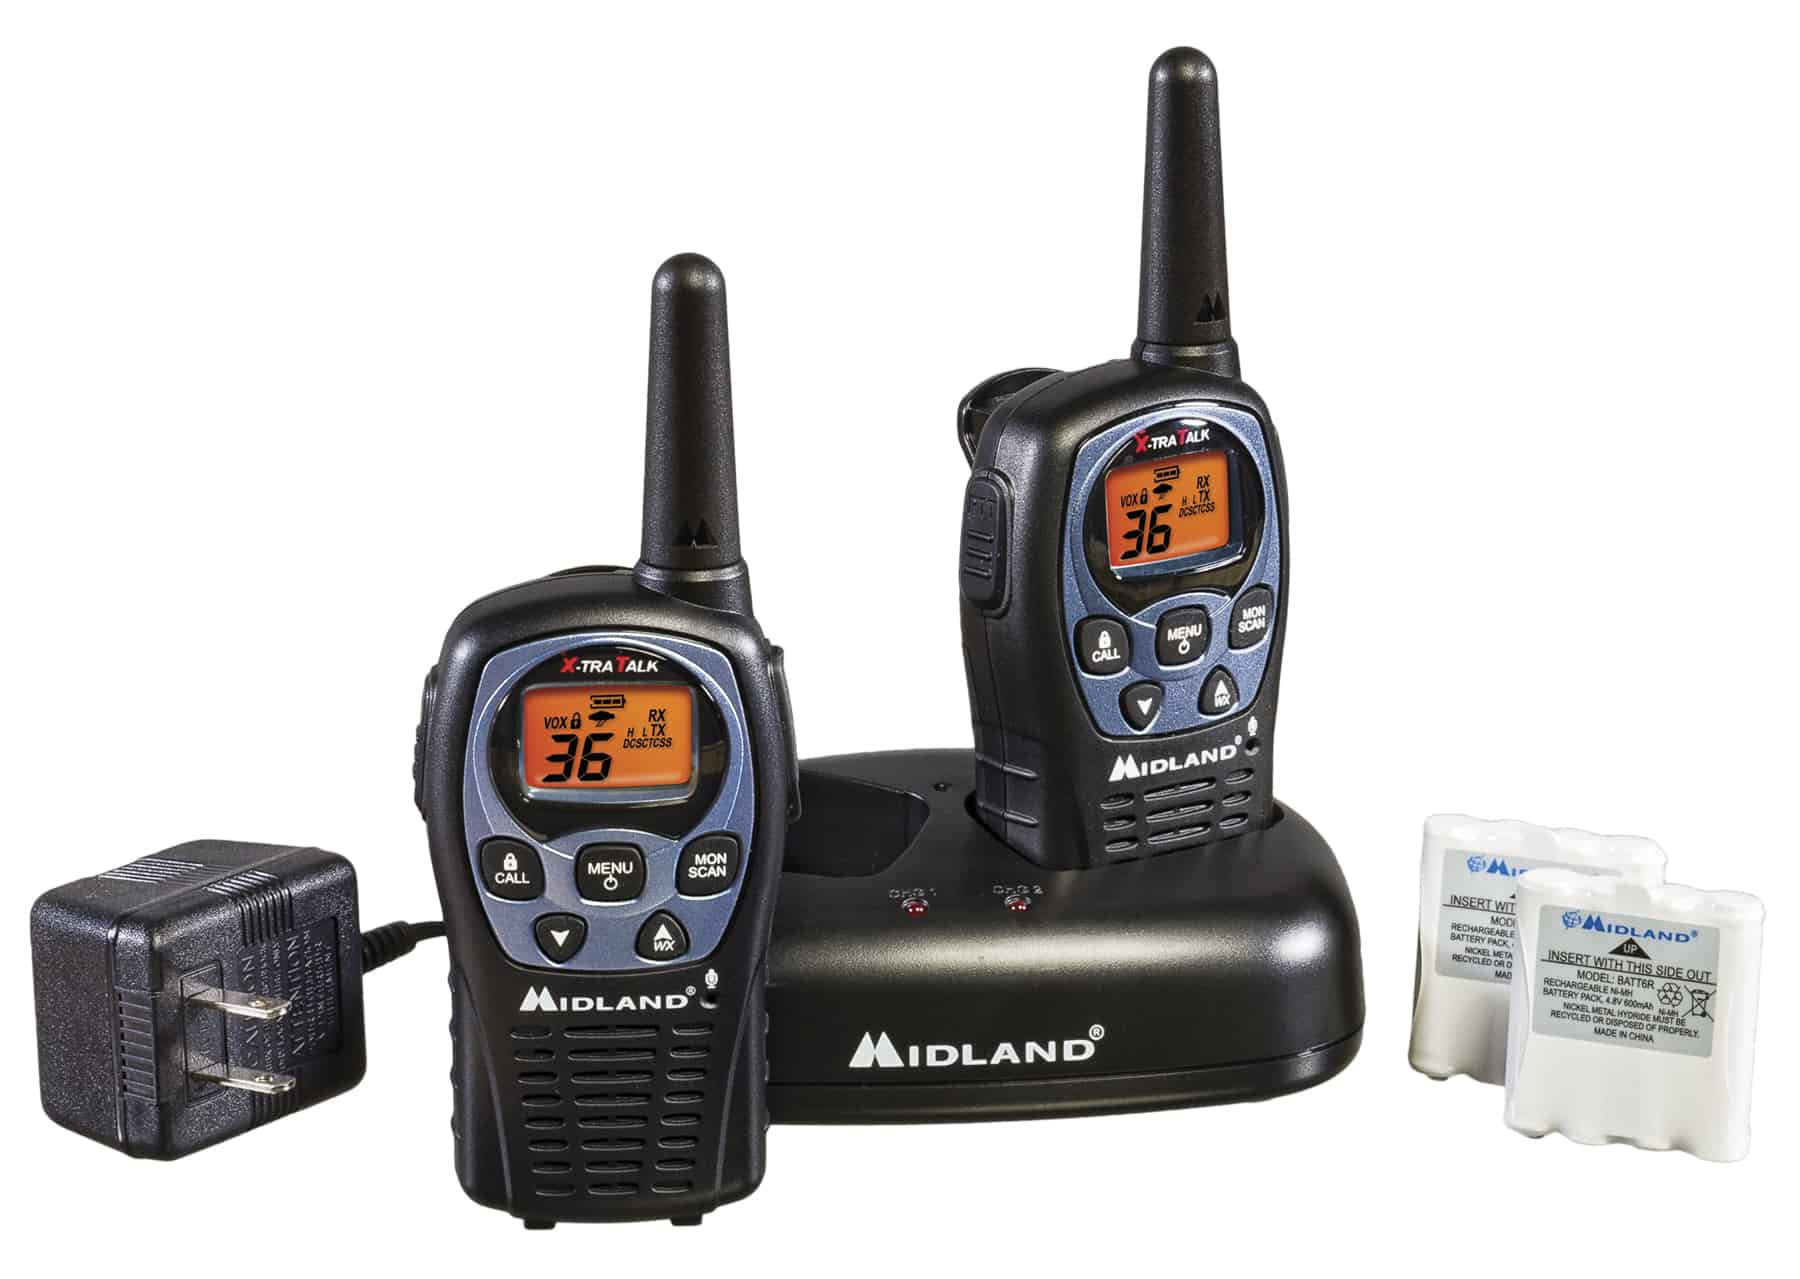 LXT560VP3 - Midland 36 Channel FRS/GMRS Radio Handheld Pair